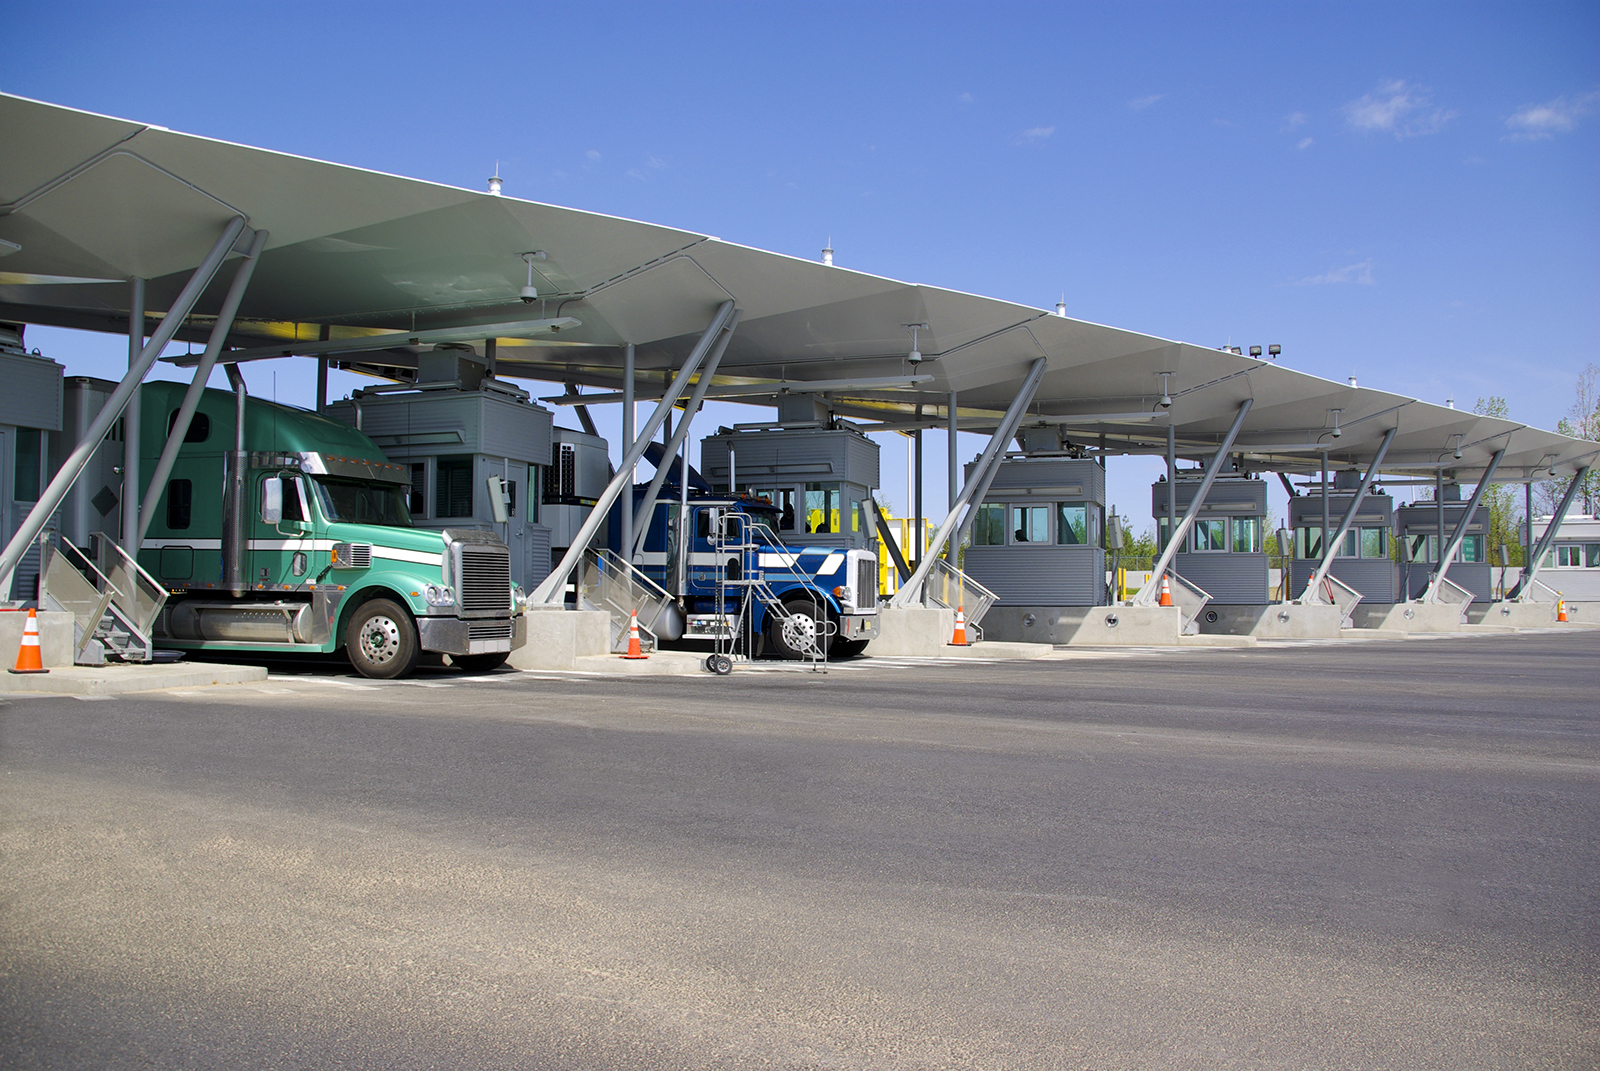 Semi-trucks-pay-at-tollbooth-at-Canadian-border-000034492786_Large.jpg